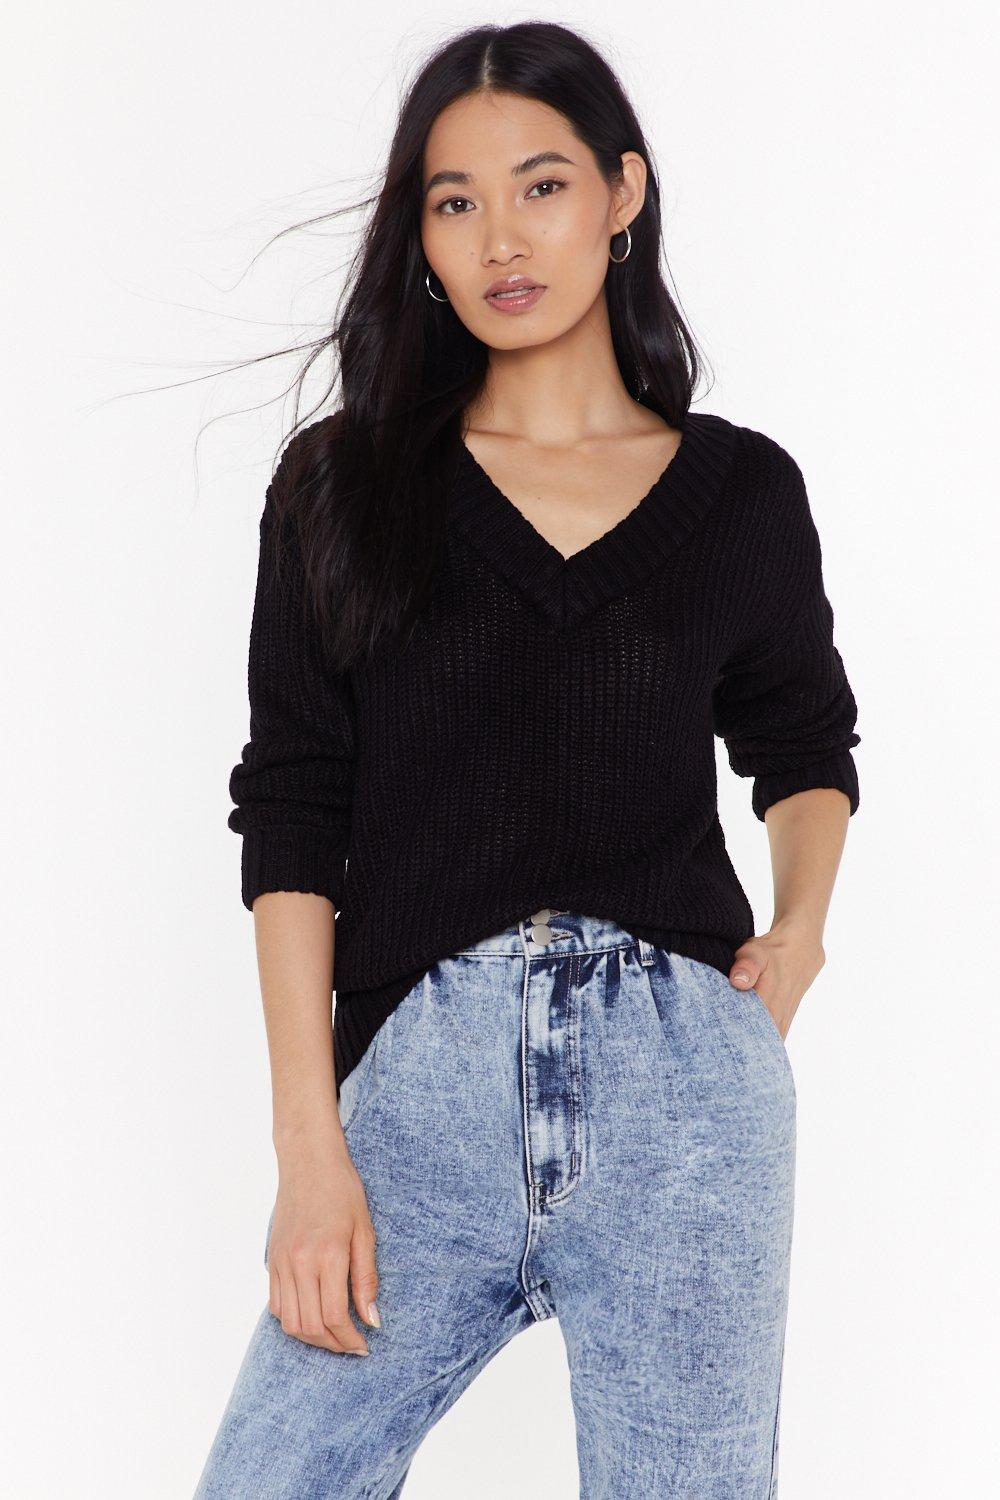 Never Had Knit So Good V Neck Knitted Sweater by Nasty Gal